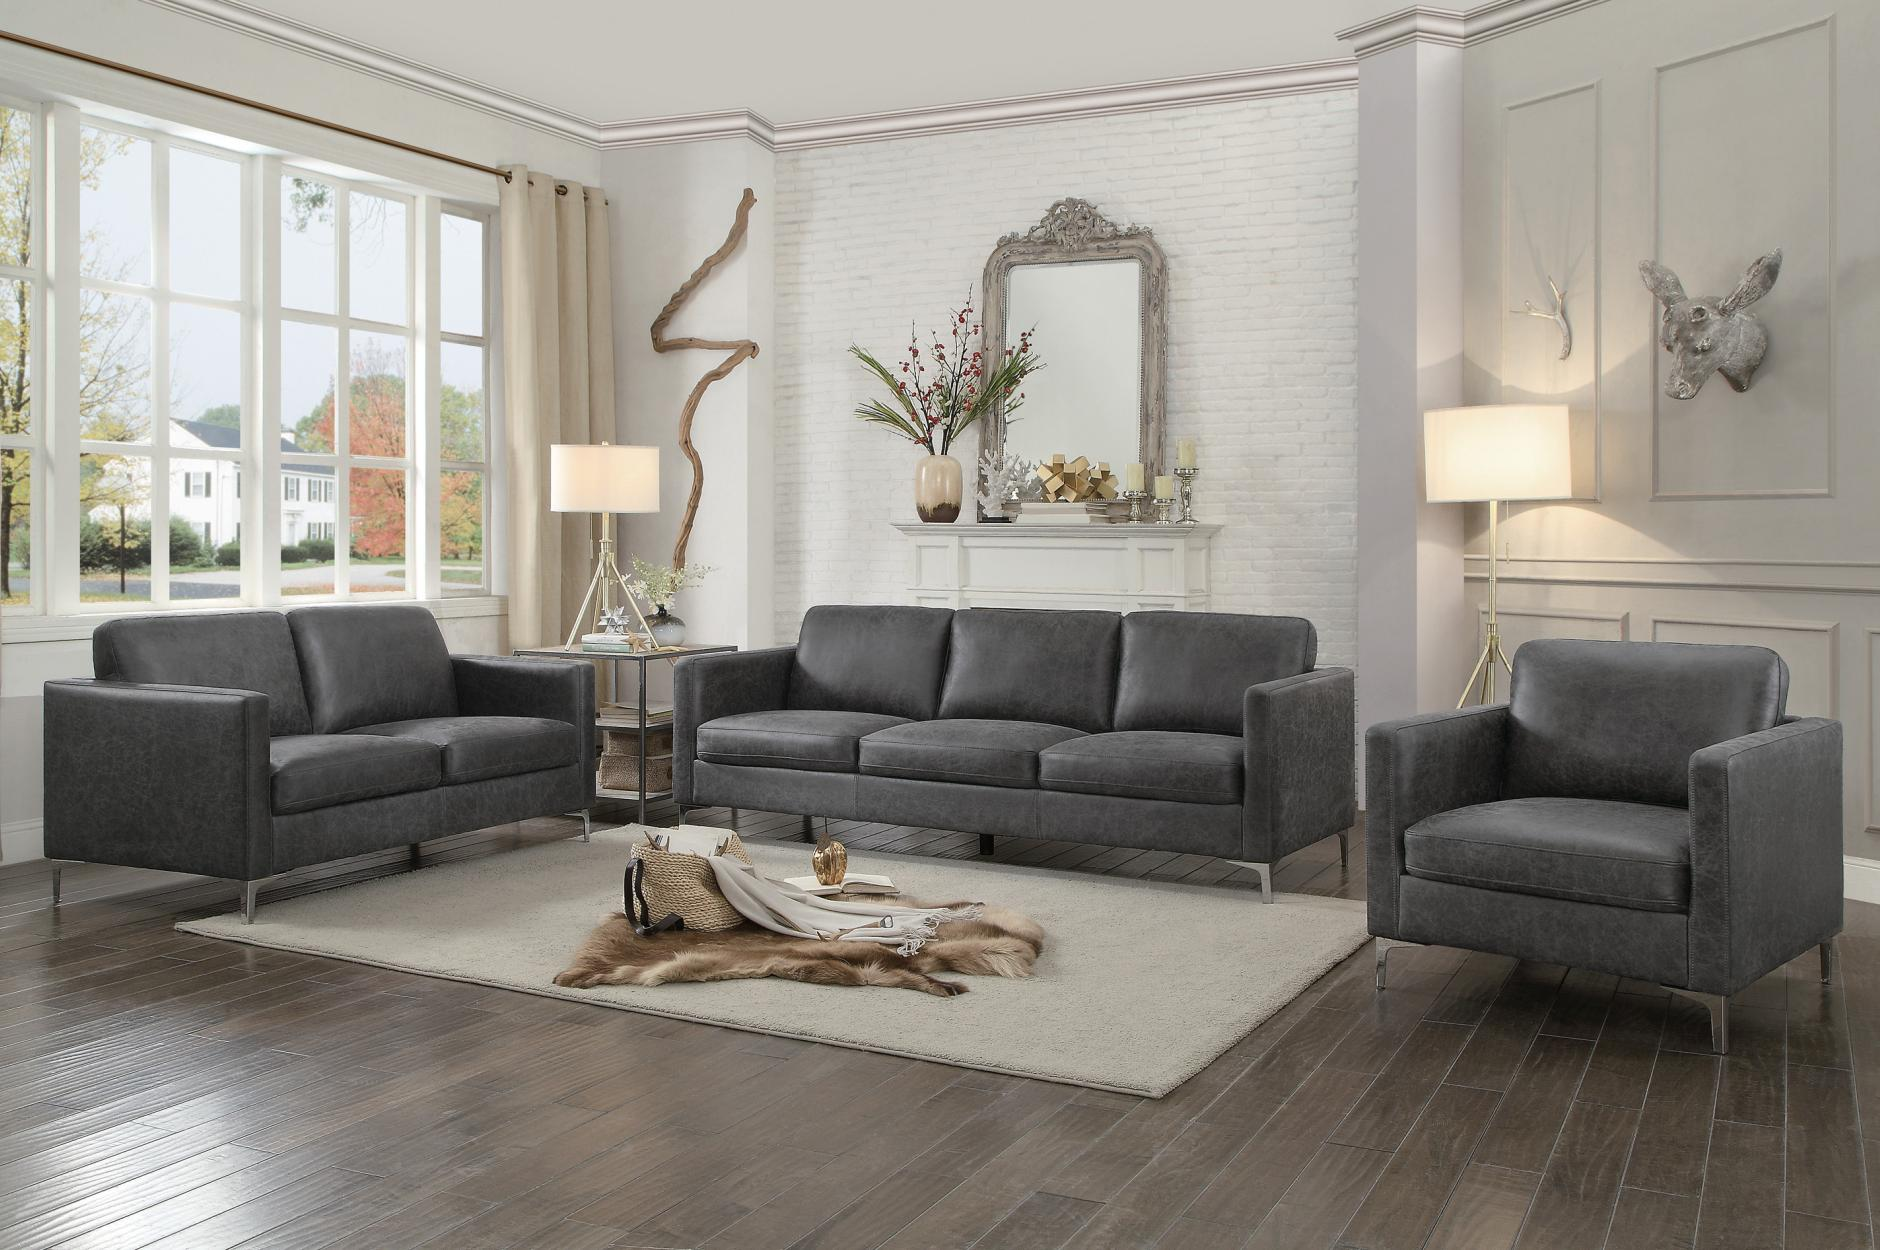 H3 Furniture Inc-